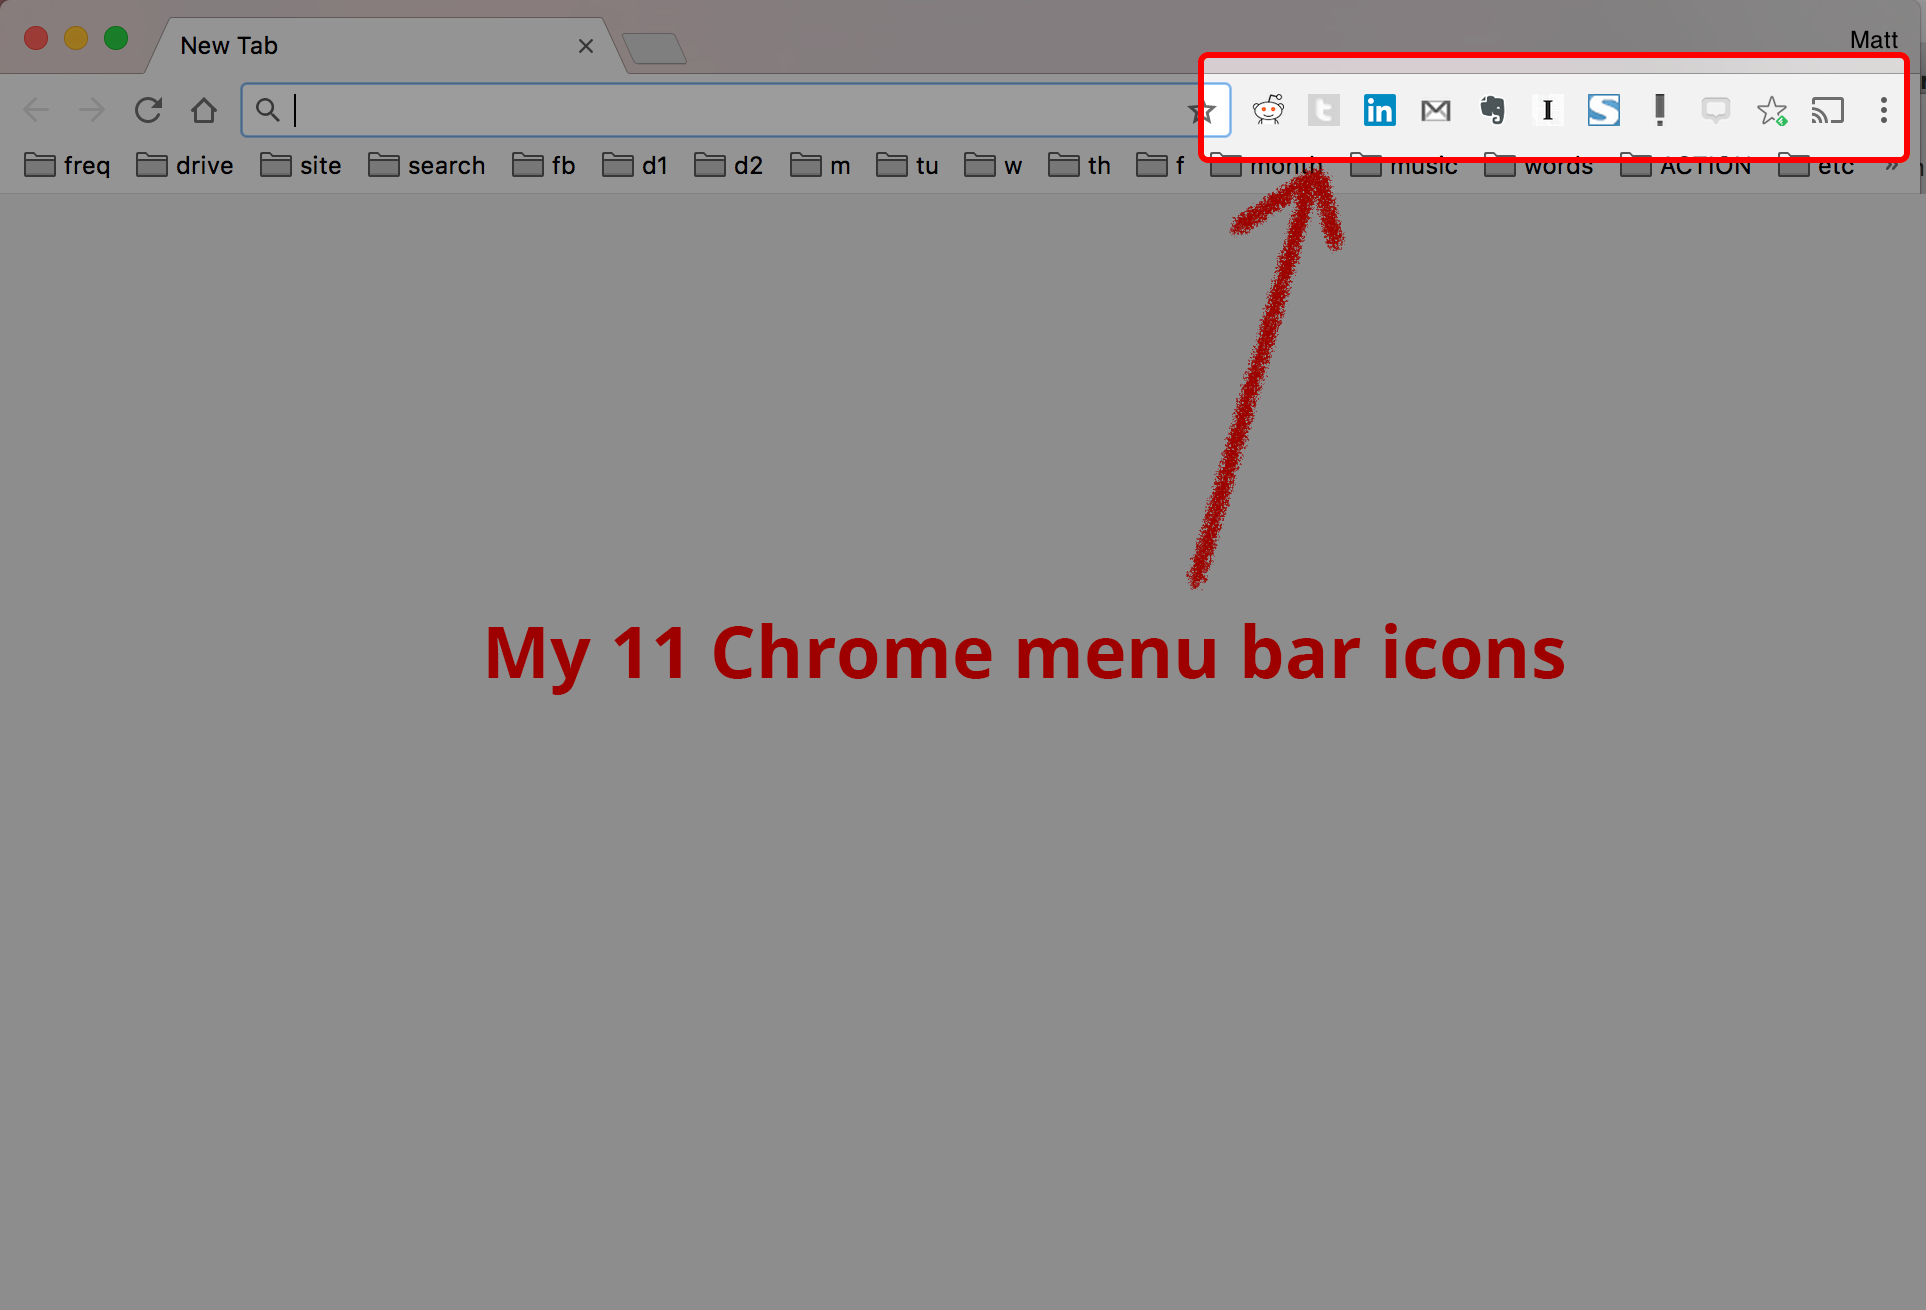 Screenshot of Chrome menu bar icons